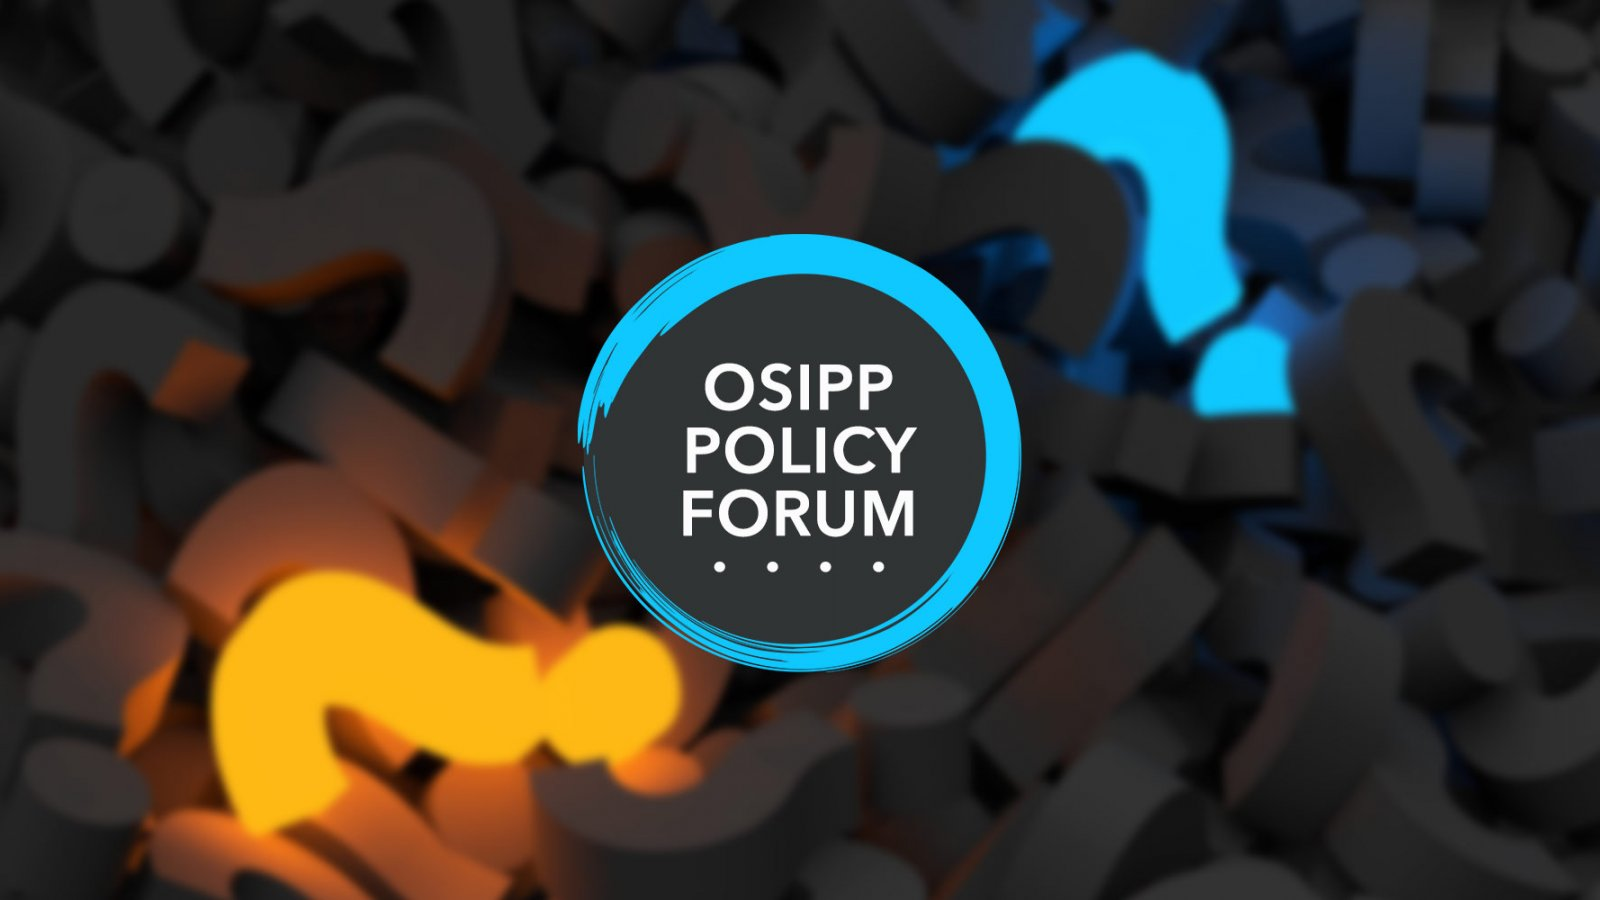 OSIPP Policy Forum